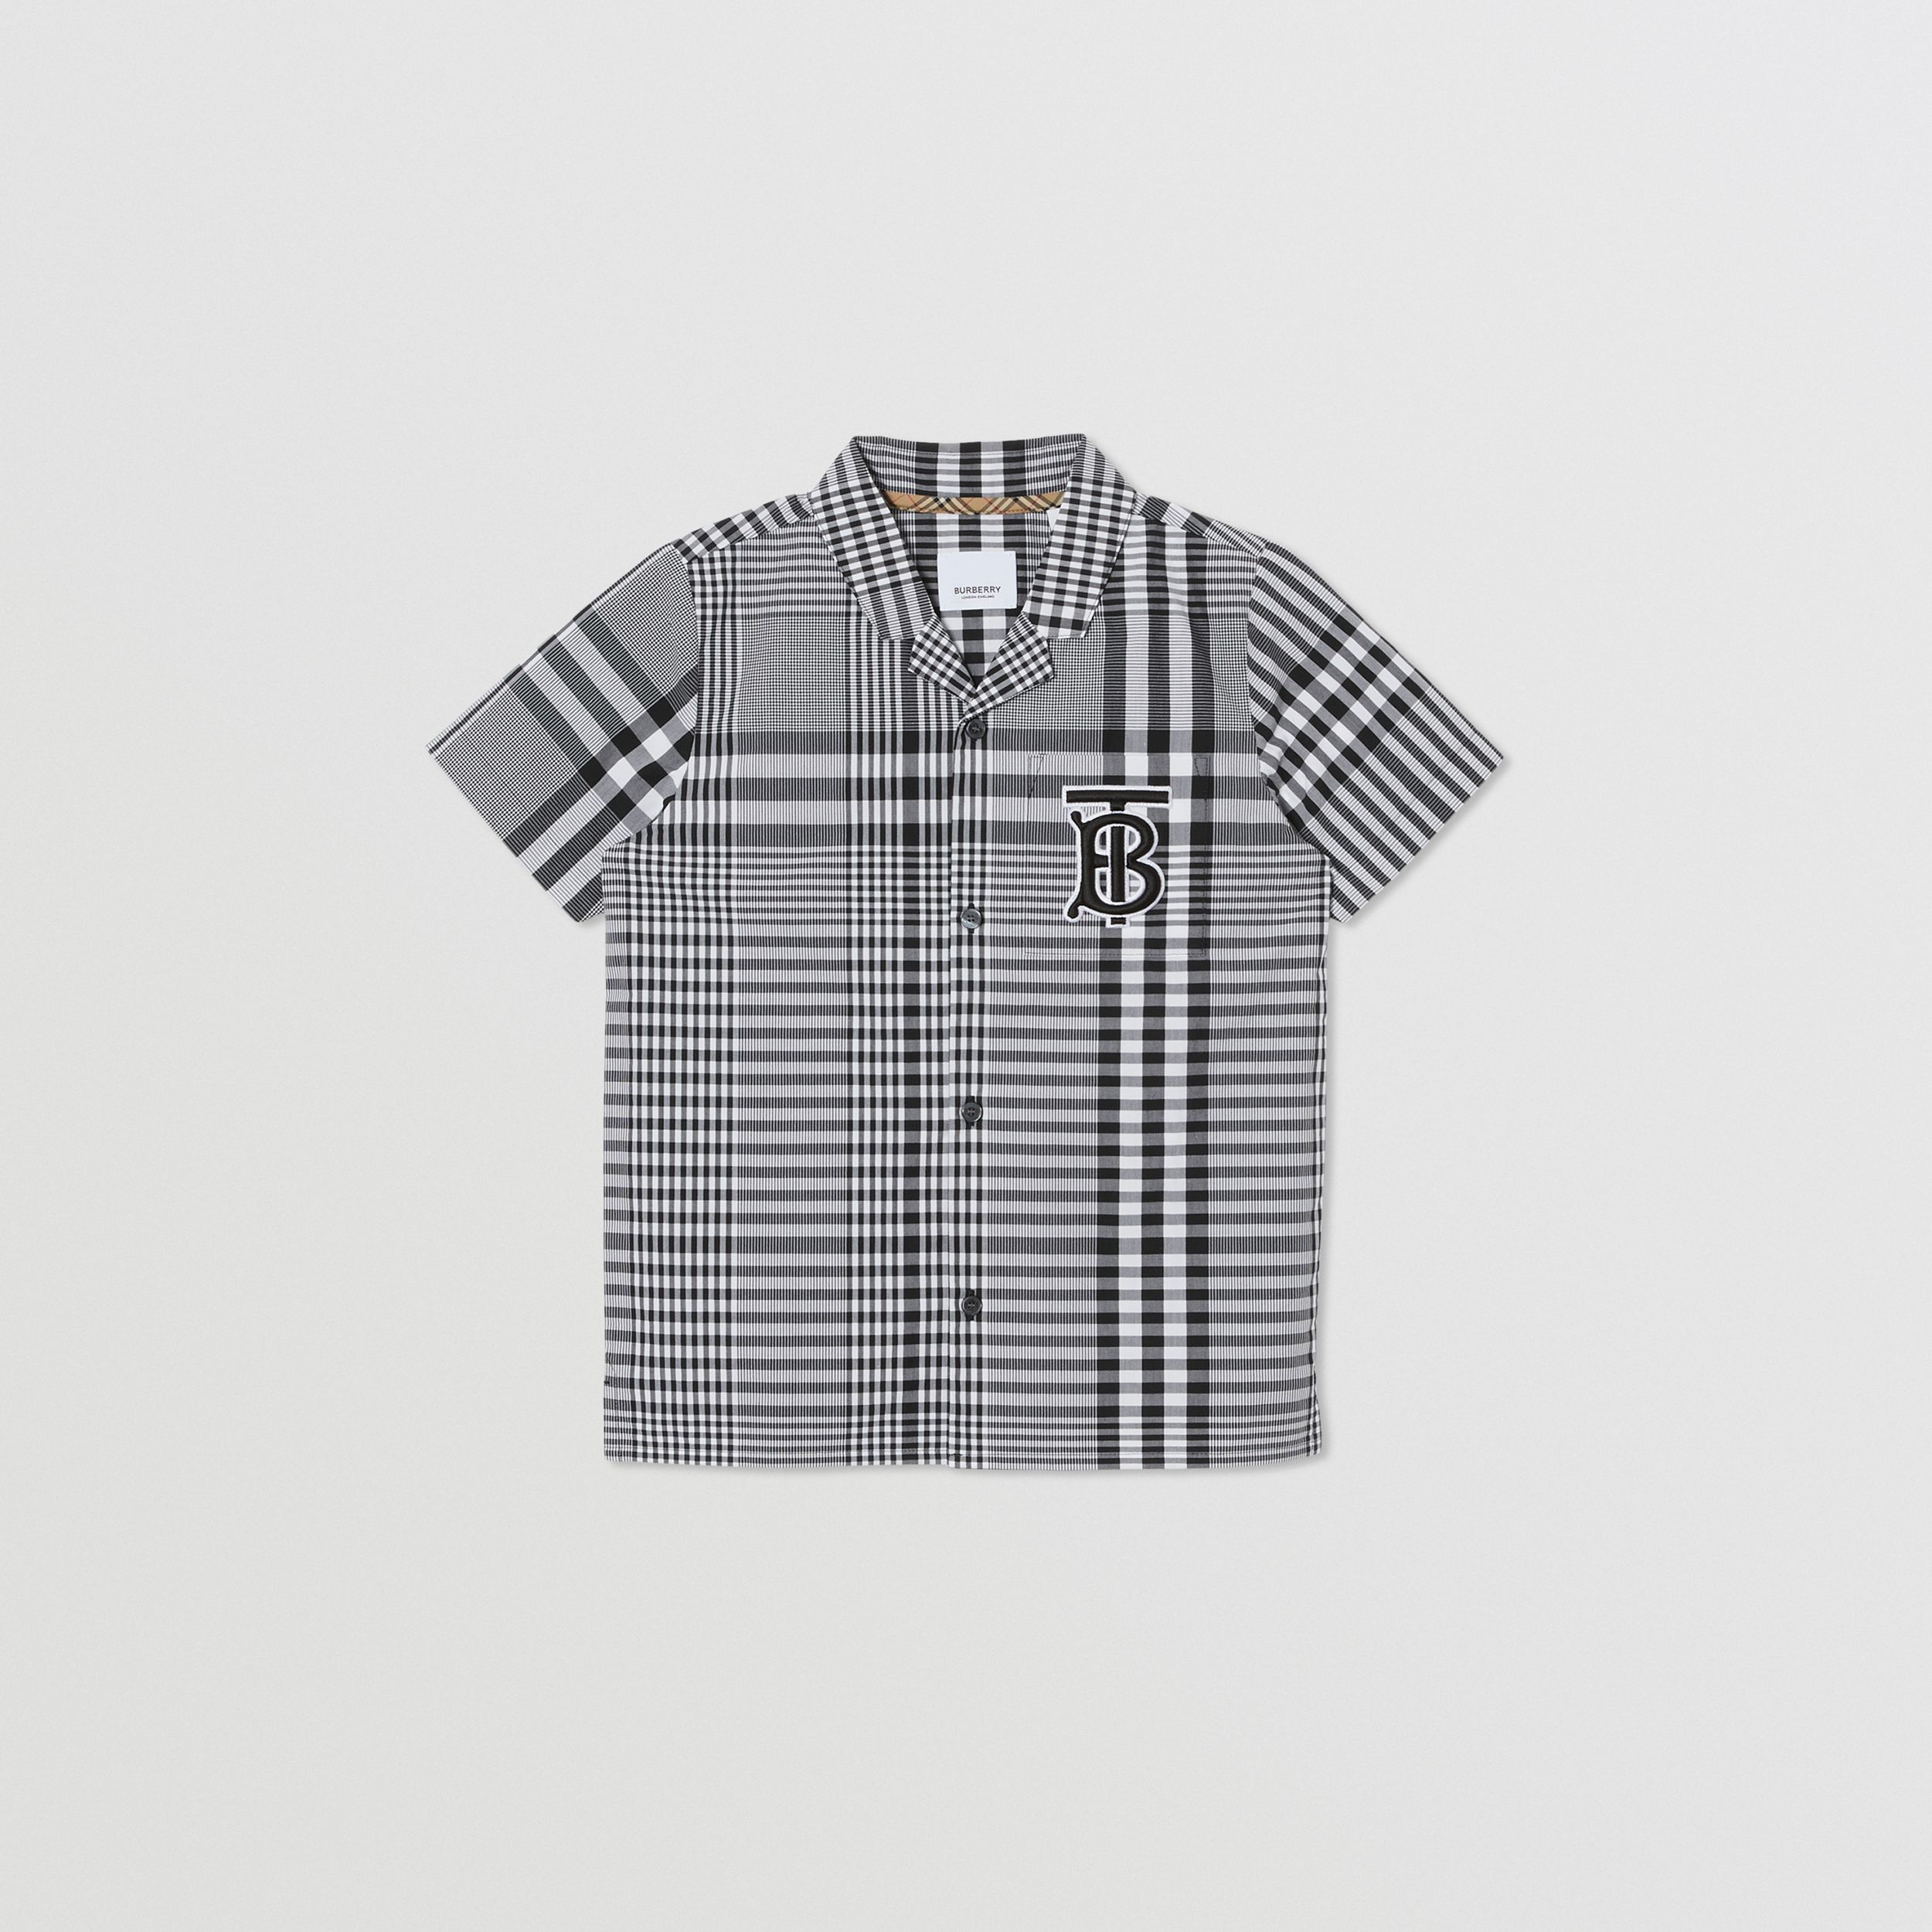 Short-sleeve Monogram Motif Check Cotton Shirt in Black | Burberry - 1